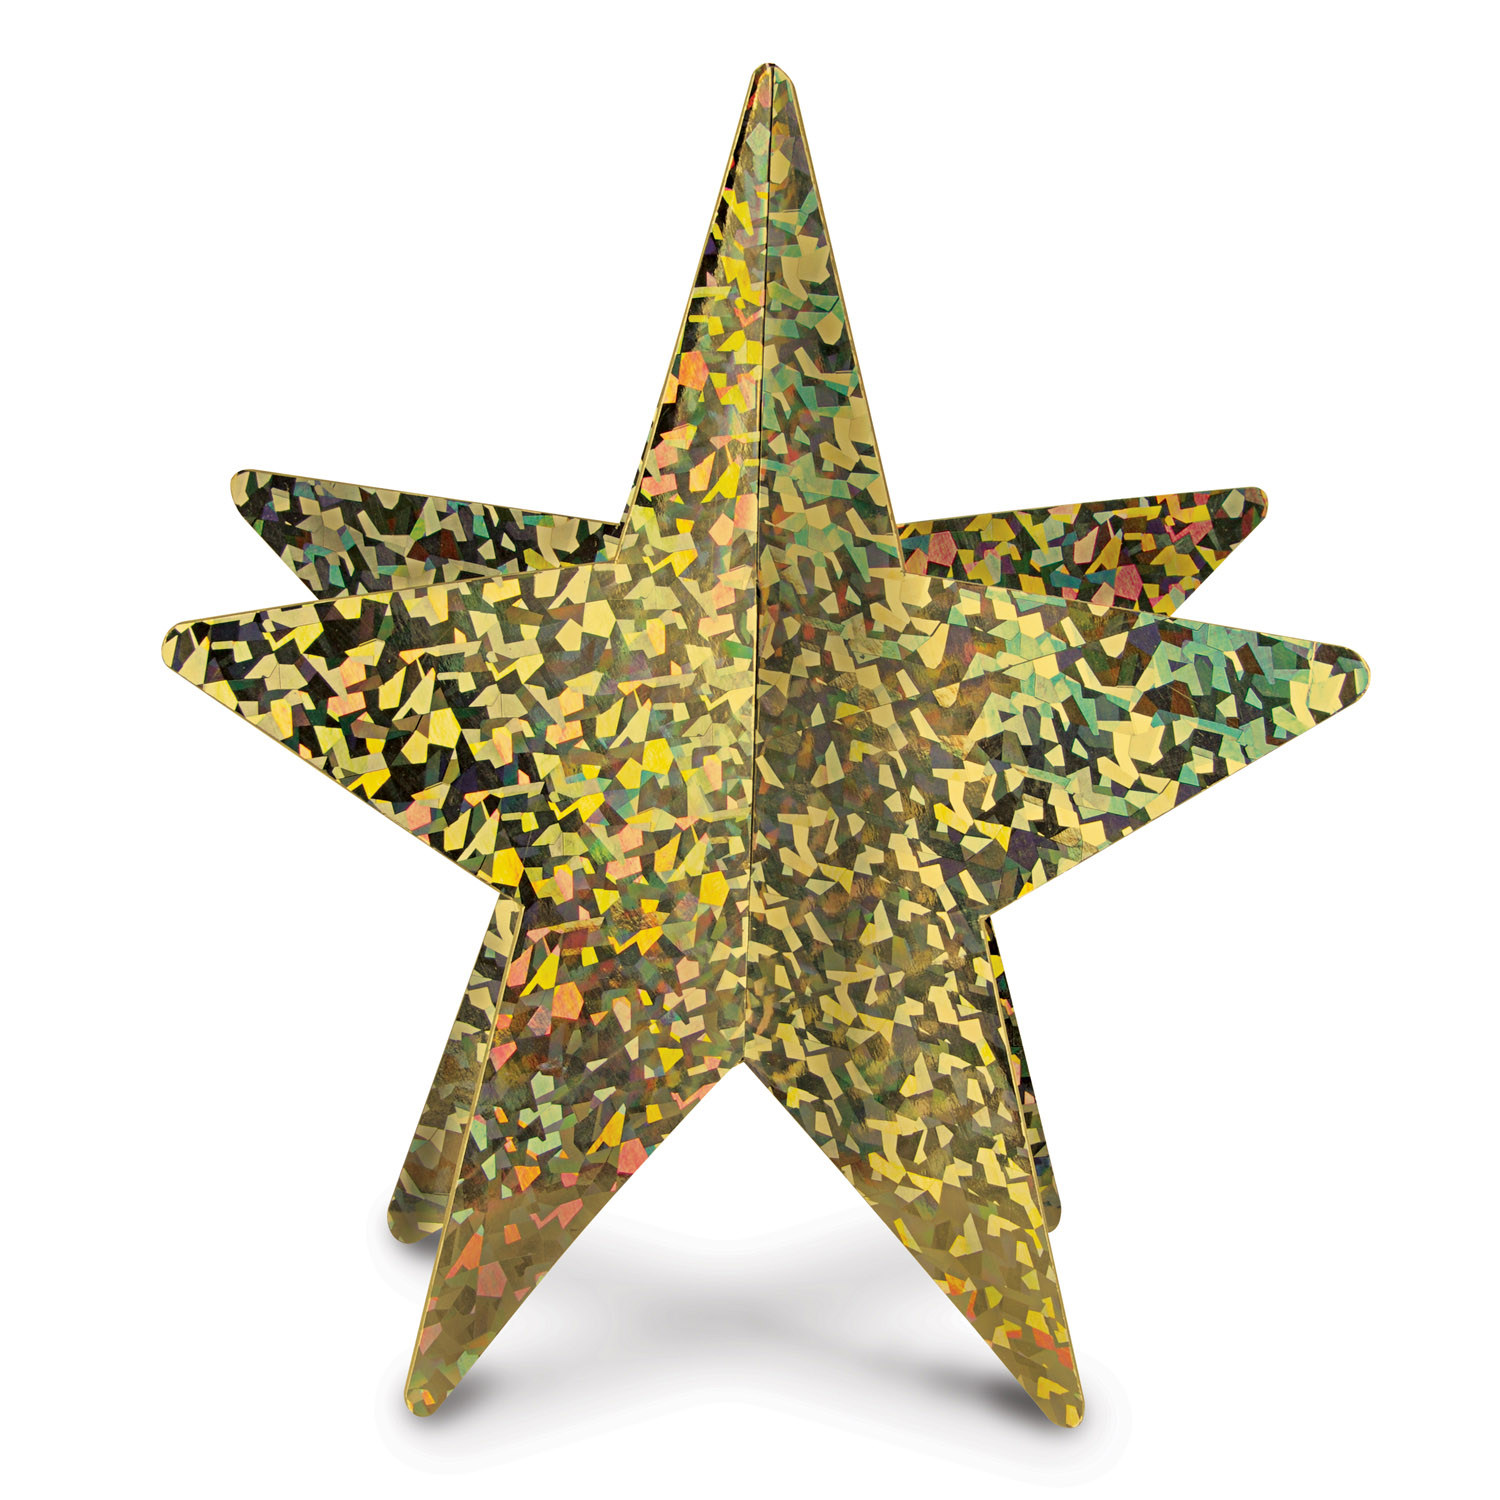 3-D Prismatic Star Centerpiece (Pack of 12) 3-D Prismatic Star Centerpiece, tables, new years eve, hollywood, decoration, wholesale, inexpensive, bulk